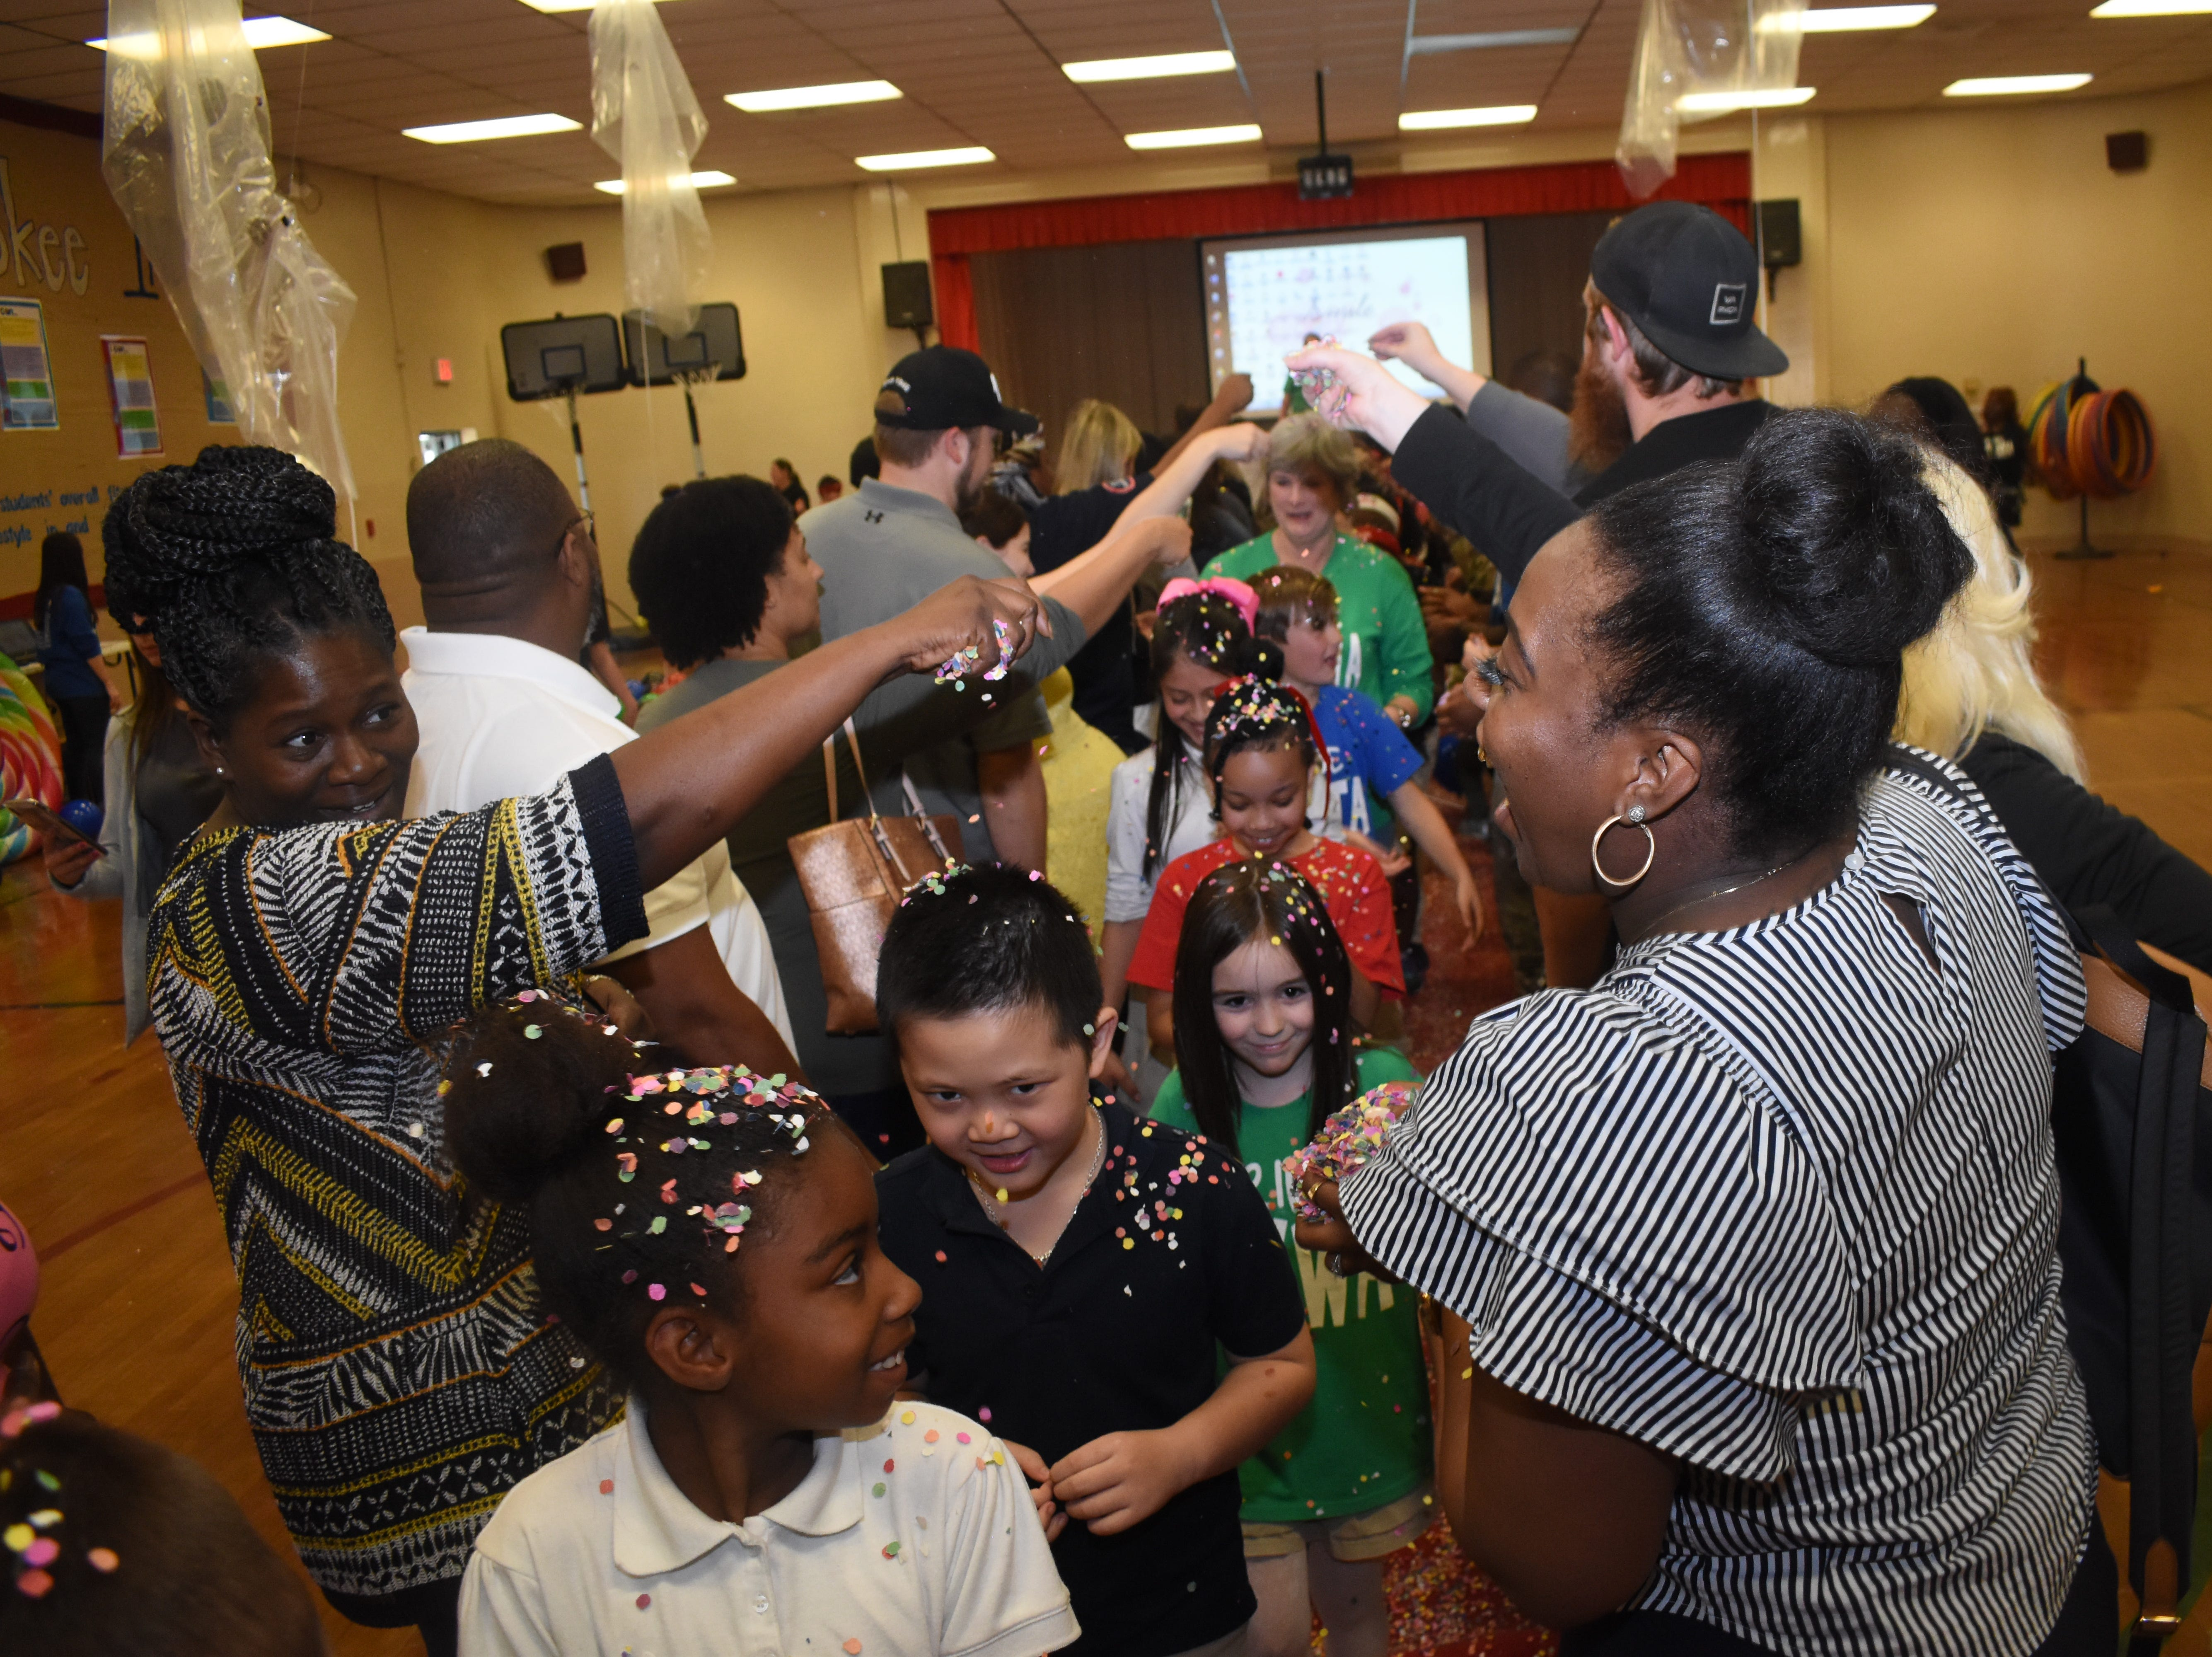 """Cherokee Elementary School faculty and staff held a Test Pep Rally Monday, April 22, 2019 for their third, fourth and fifth grade students who will be taking the annual LEAP Test. Fifth-graders will take the LEAP test Tuesday, April 23, 2019 and third and fourth-graders will take the test next week.""""The purpose of this test prep rally is to motivate our students to do their very best on the upcoming LEAP test,"""" said Laurie Bolden, third grade teacher. """"We have been preparing for this test all year.""""At the rally students sang songs and performed skits. The Peabody Magnet High School Drumline were guest performers at the rally. Teachers and staff held a dance flash mob. Parents at the rally wrote words of encouragement to their children and other school students. Students were treated to a red carpet treatment where parents tossed confetti on them as they made their way down the red carpet."""